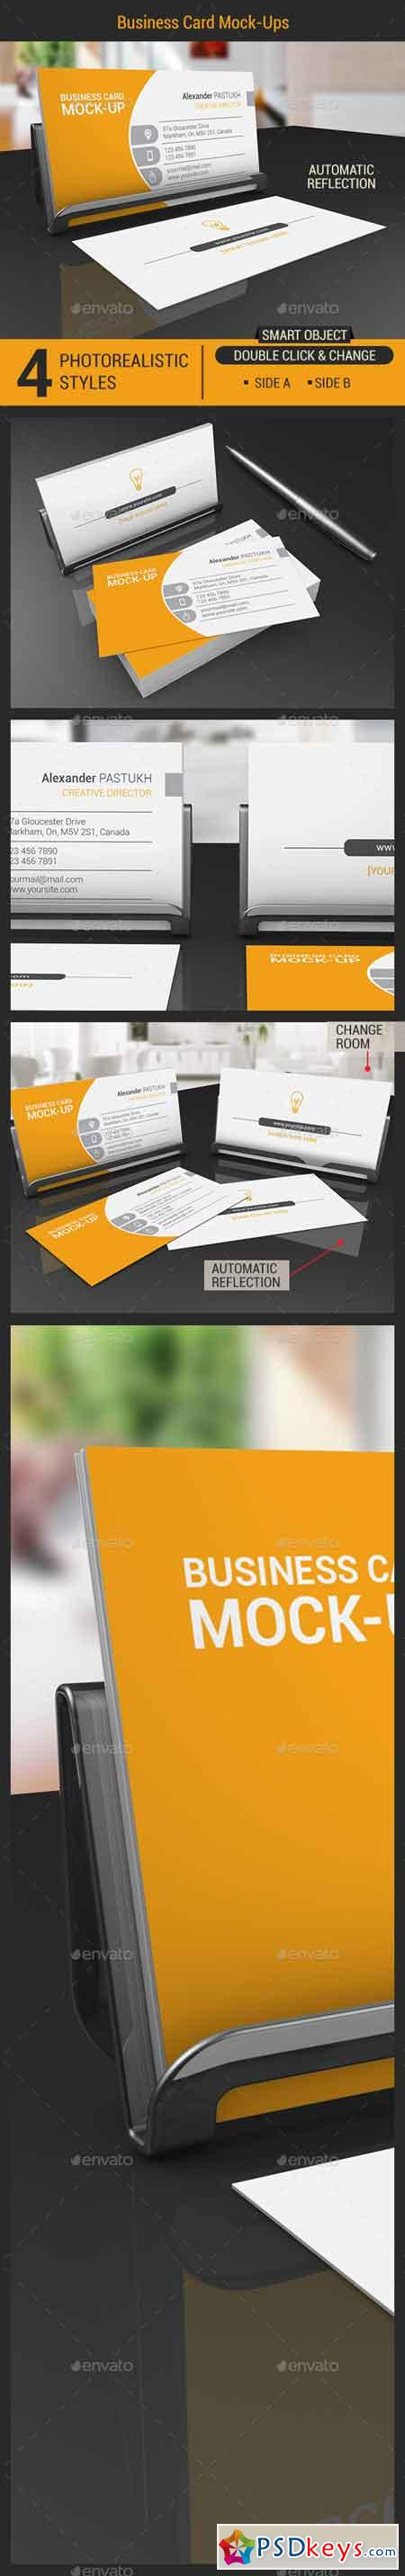 Business card mock ups 15183635 free download photoshop vector business card mock ups 15183635 reheart Image collections